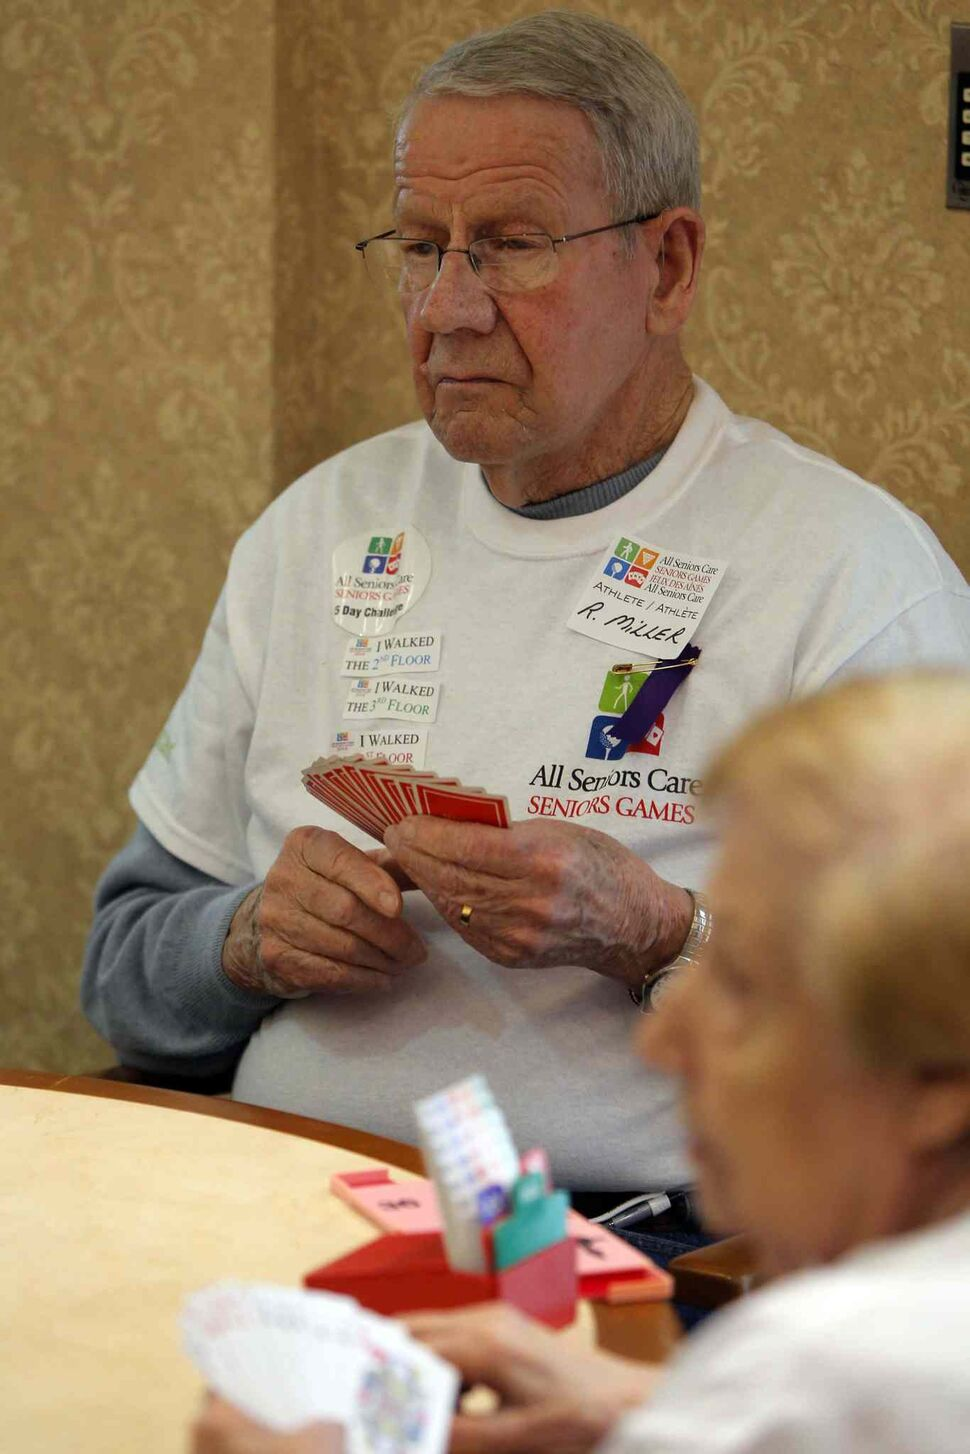 Bob Miller concentrates while playing cards during the All Senior Care Senior Games 2014 at Shaftesbury Park Retirement Residence.  (Boris Minkevich / Winnipeg Free Press)